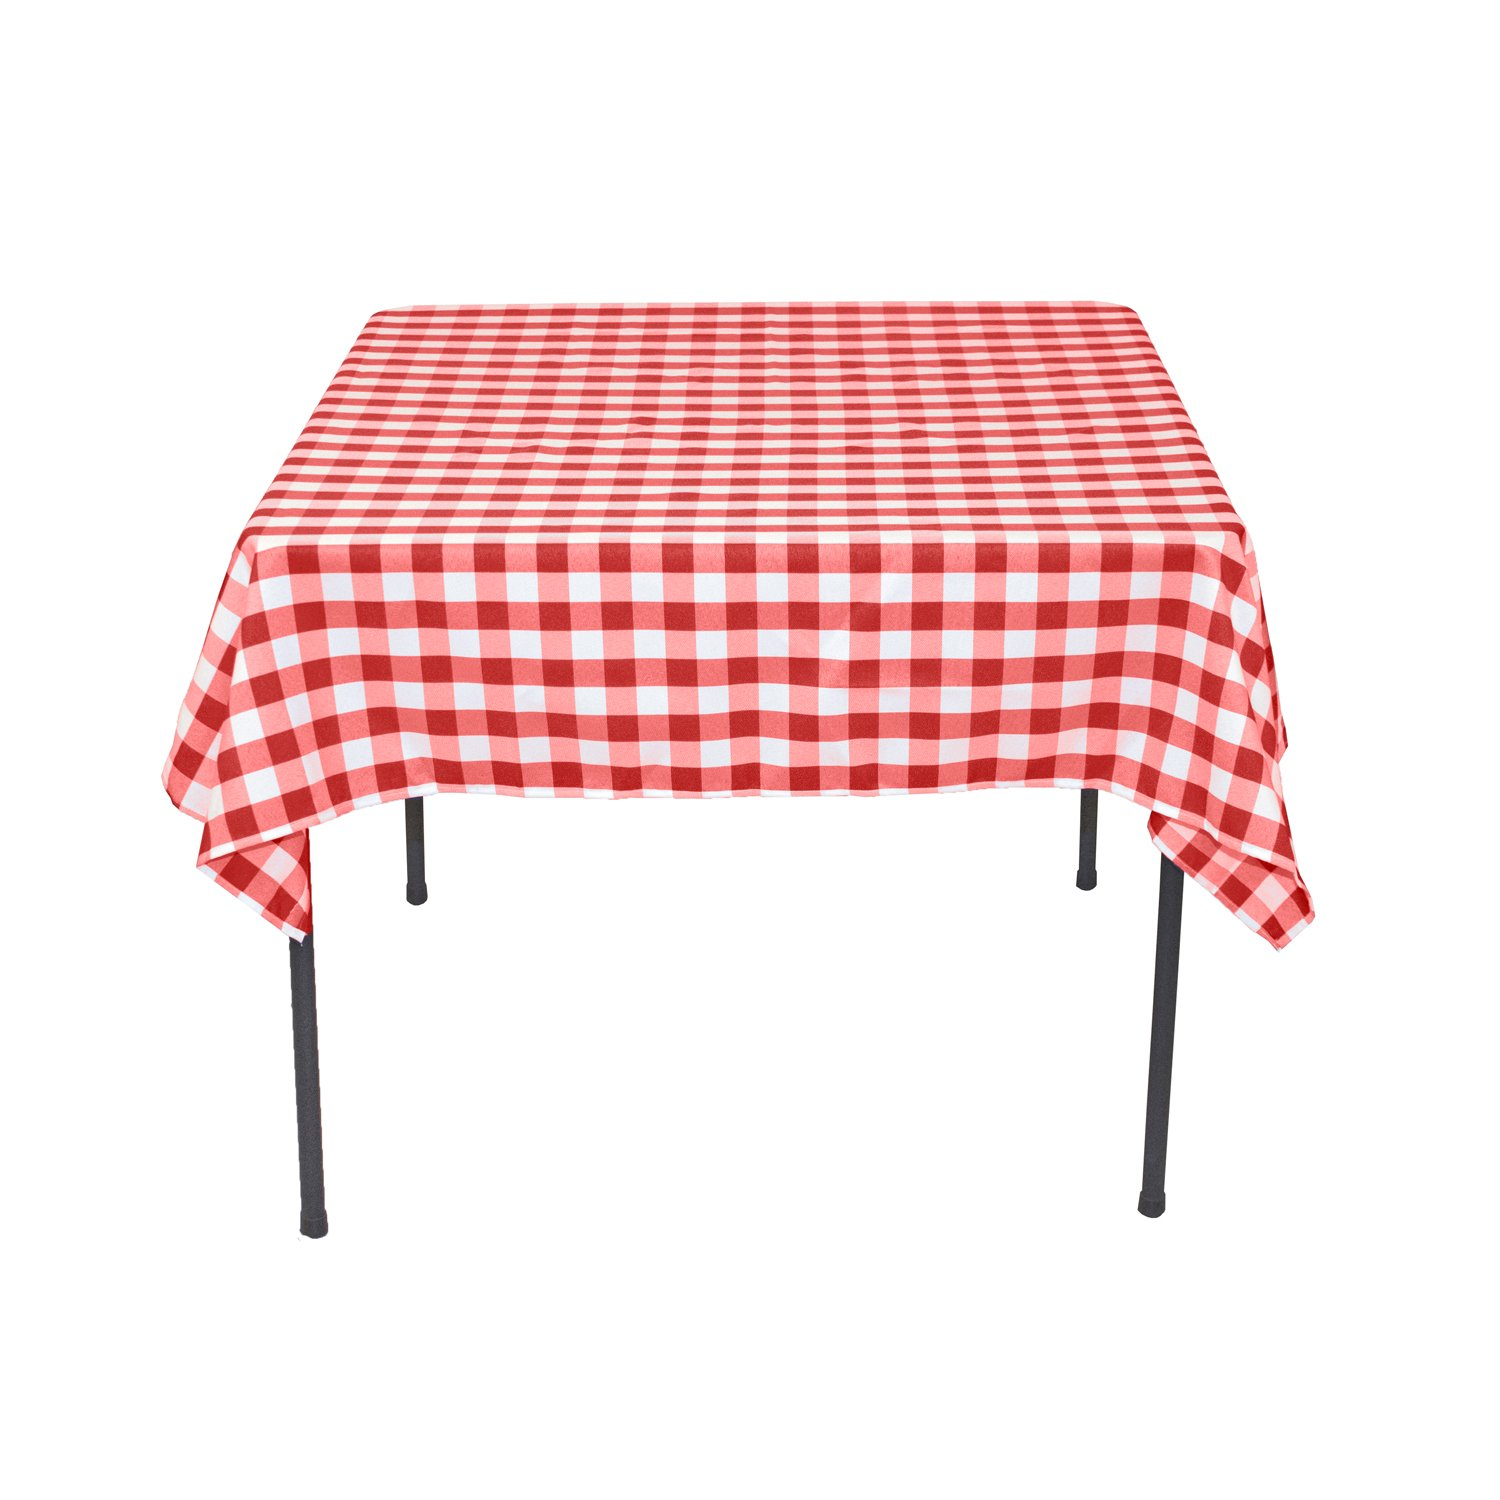 Merveilleux Square Polyester Tablecloth Red U0026amp; White Checkered